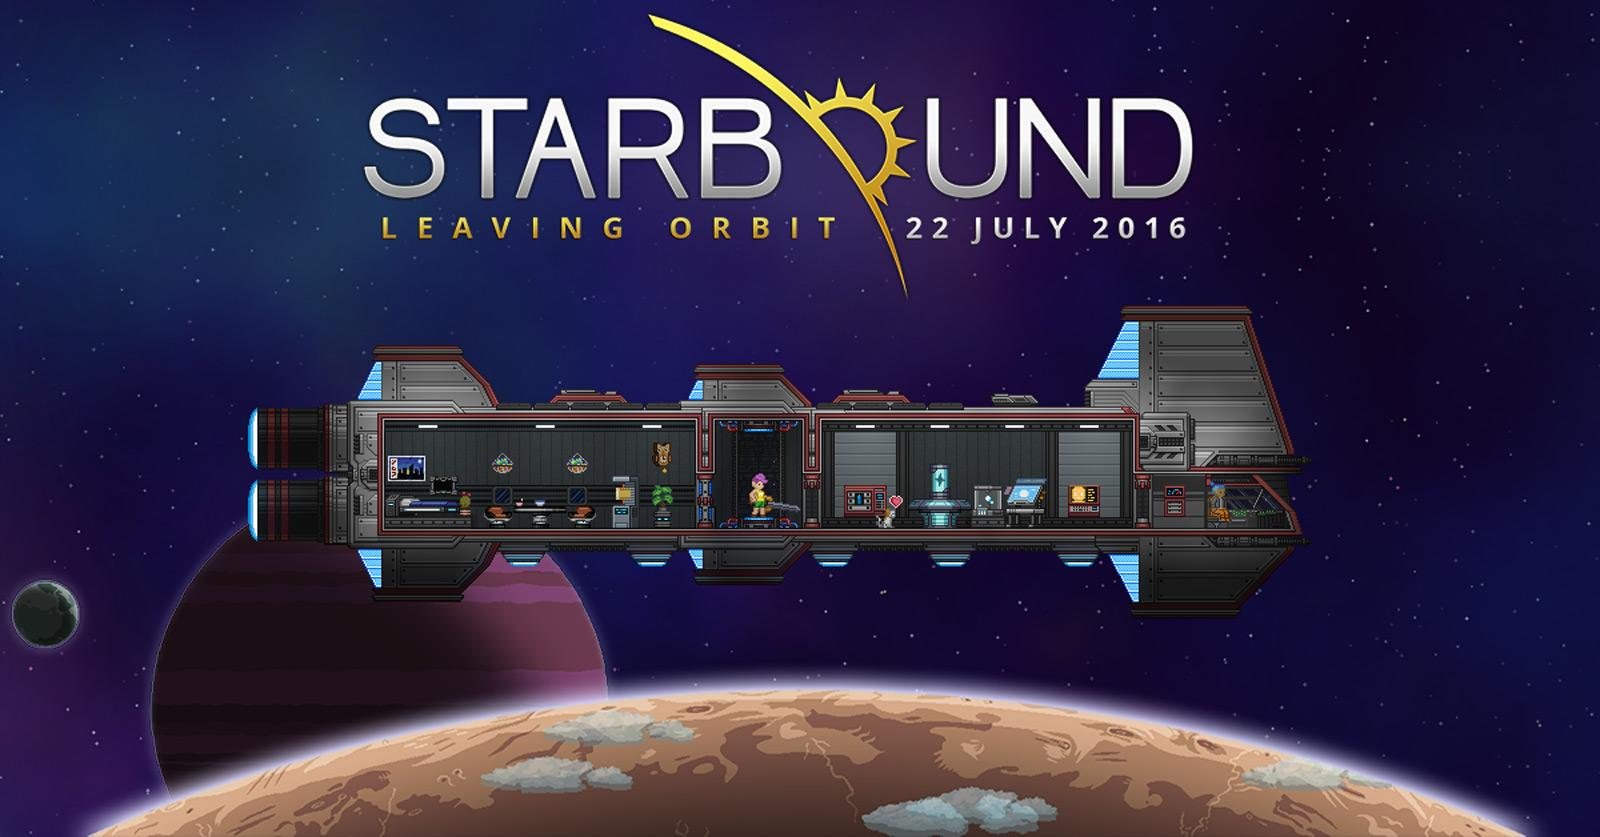 Starbound Will Be Ready For Everyone On July 22nd Engadget